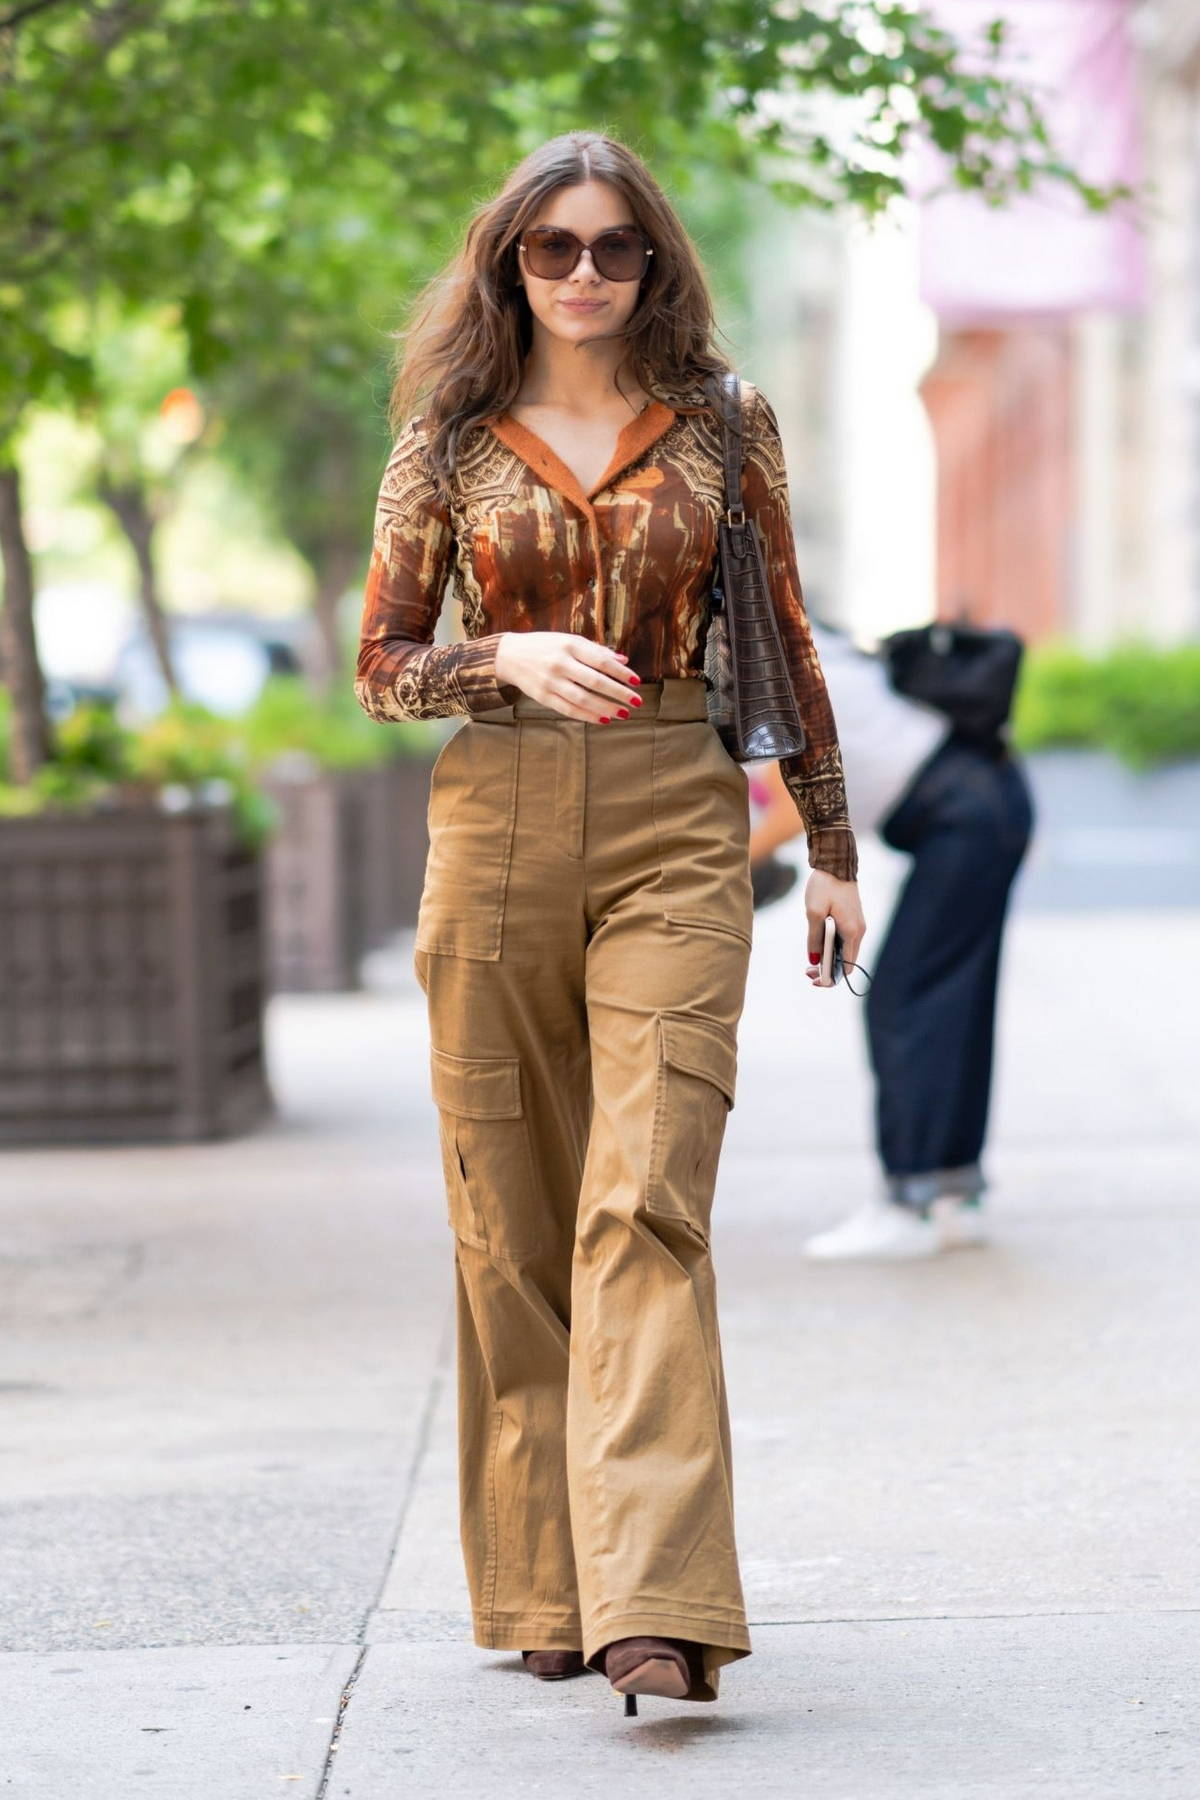 Hailee Steinfeld puts on a stylish display while stepping out for a stroll in SoHo, New York City